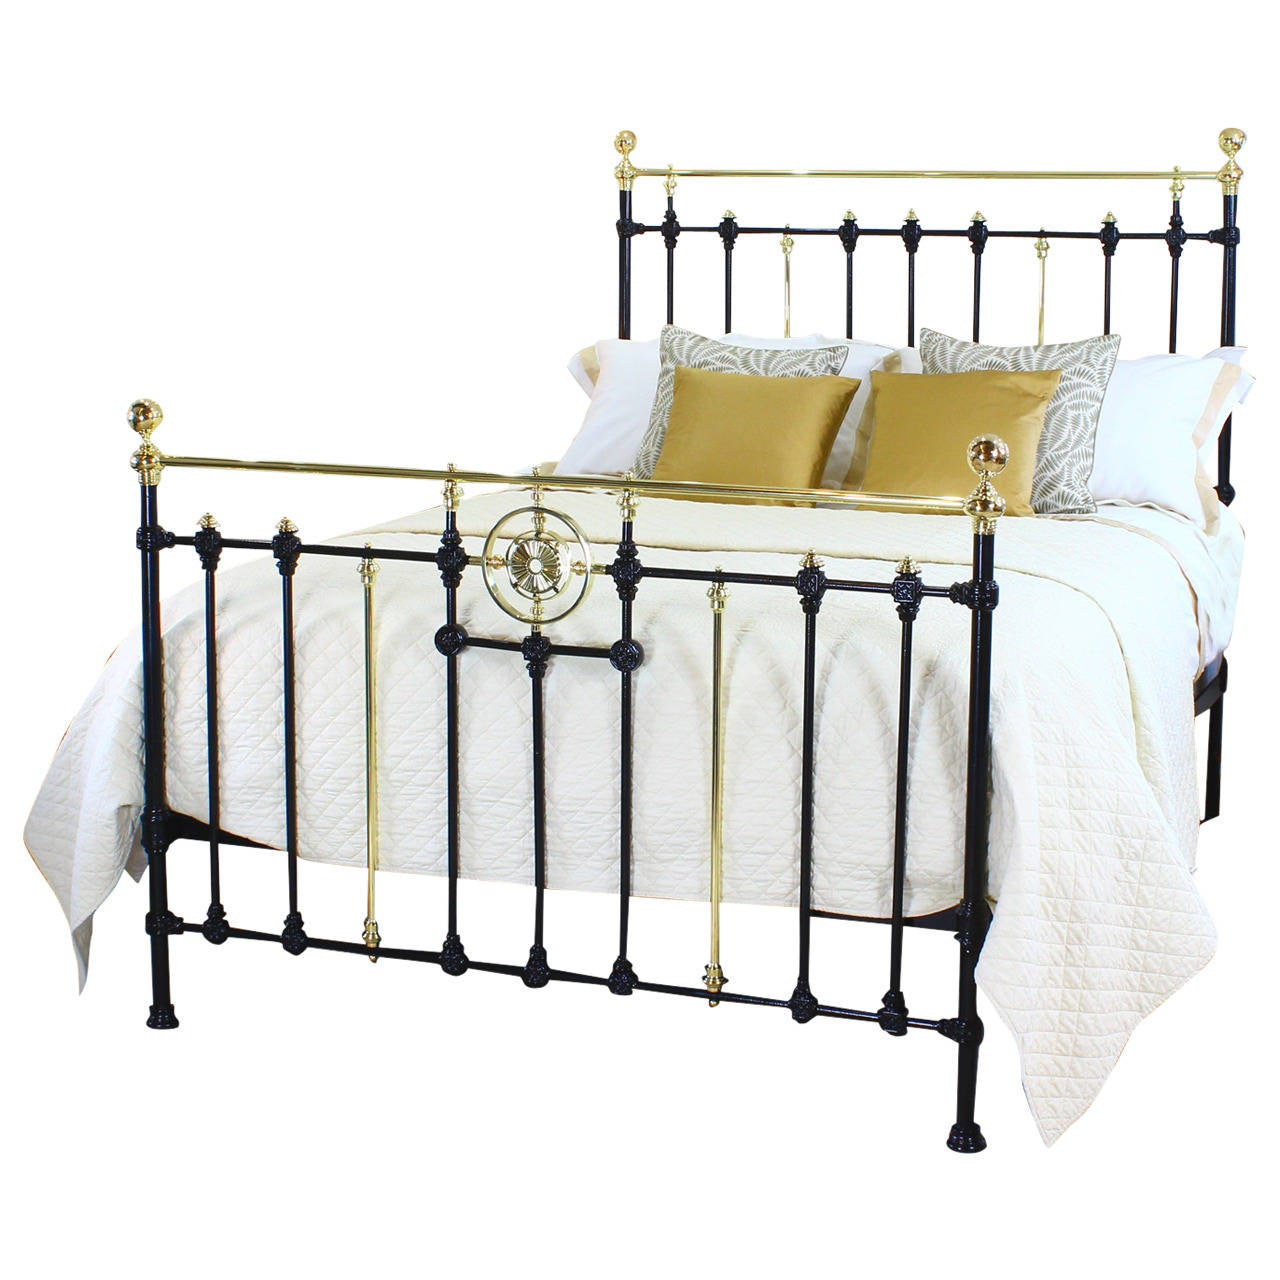 Victorian brass and cast iron kingsize bed at 1stdibs for Wrought iron four poster bed frames